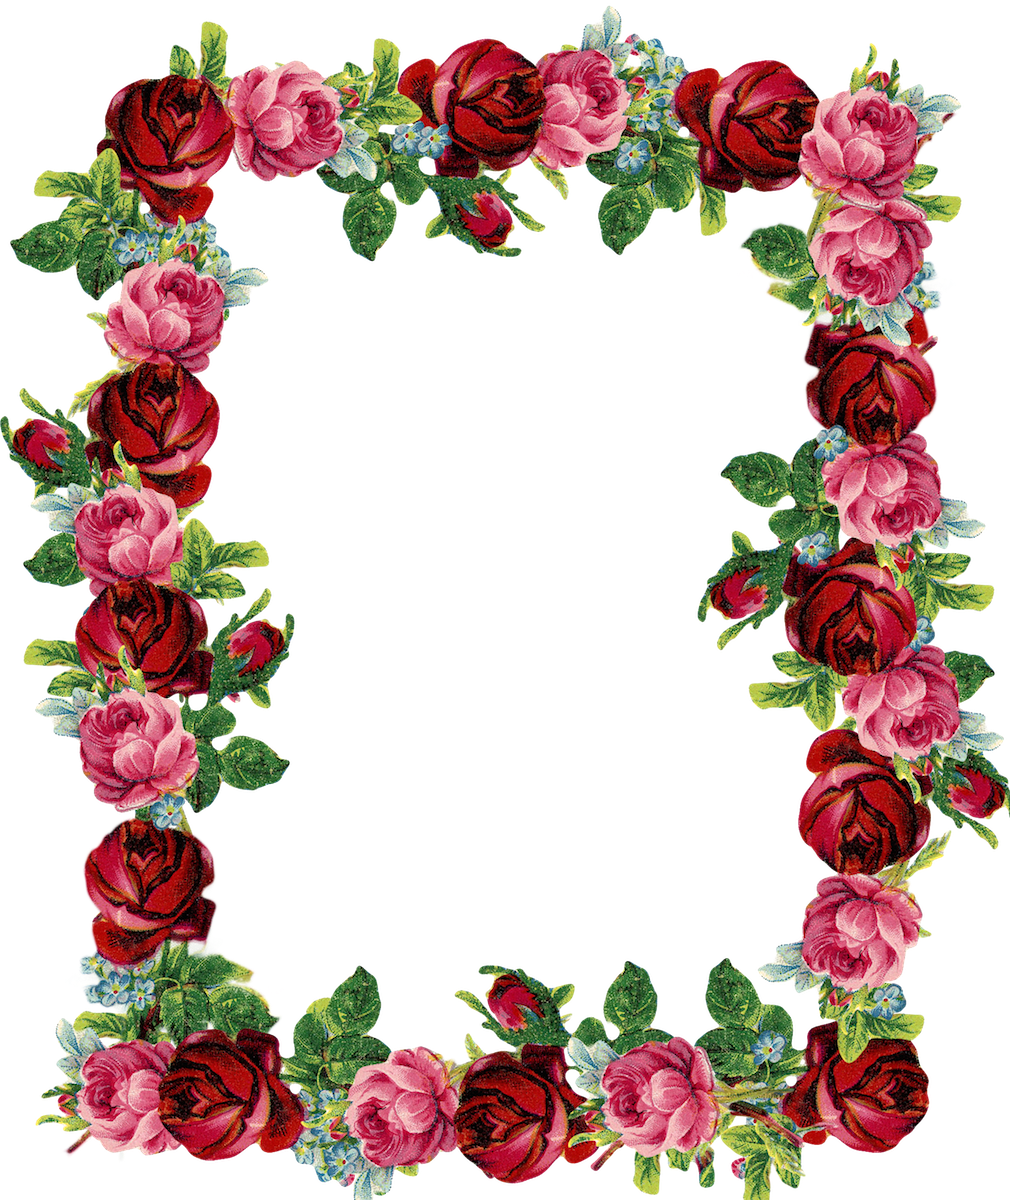 rose border png rose border png transparent free for download on webstockreview 2020 rose border png rose border png